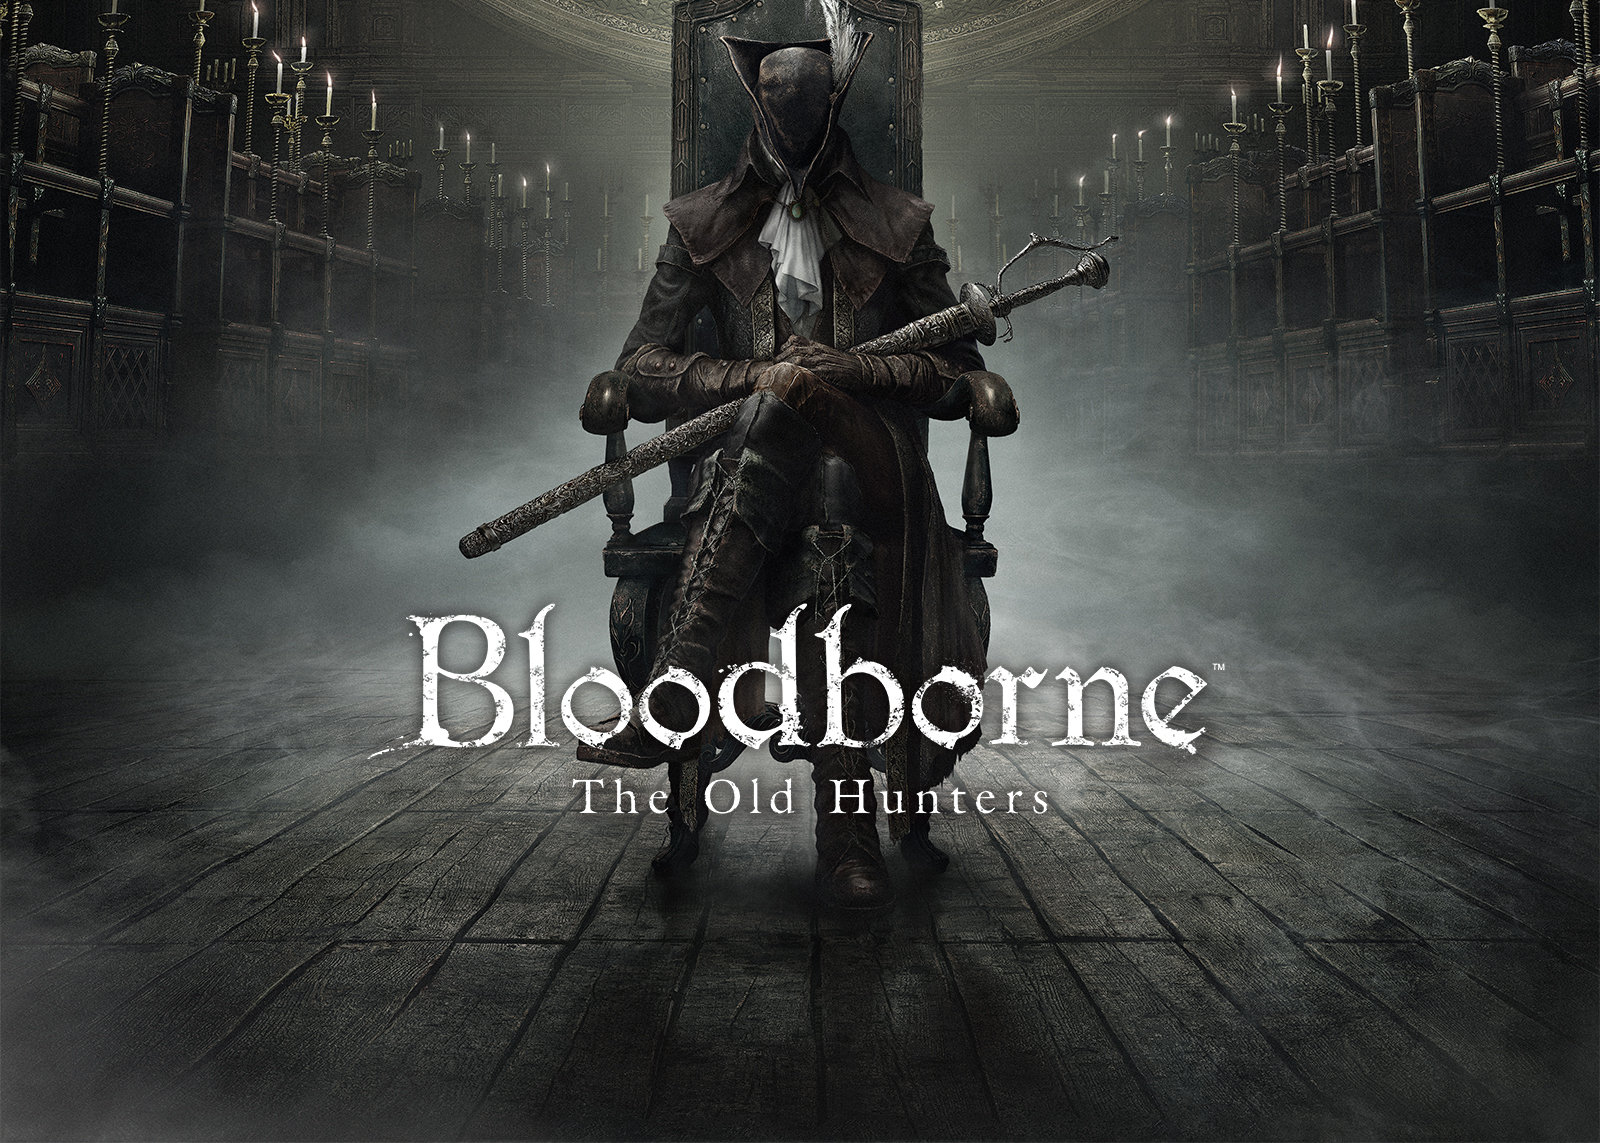 bloodborn-the-old-hunters-page-section-background-01-ps4-us-05oct15.jpg